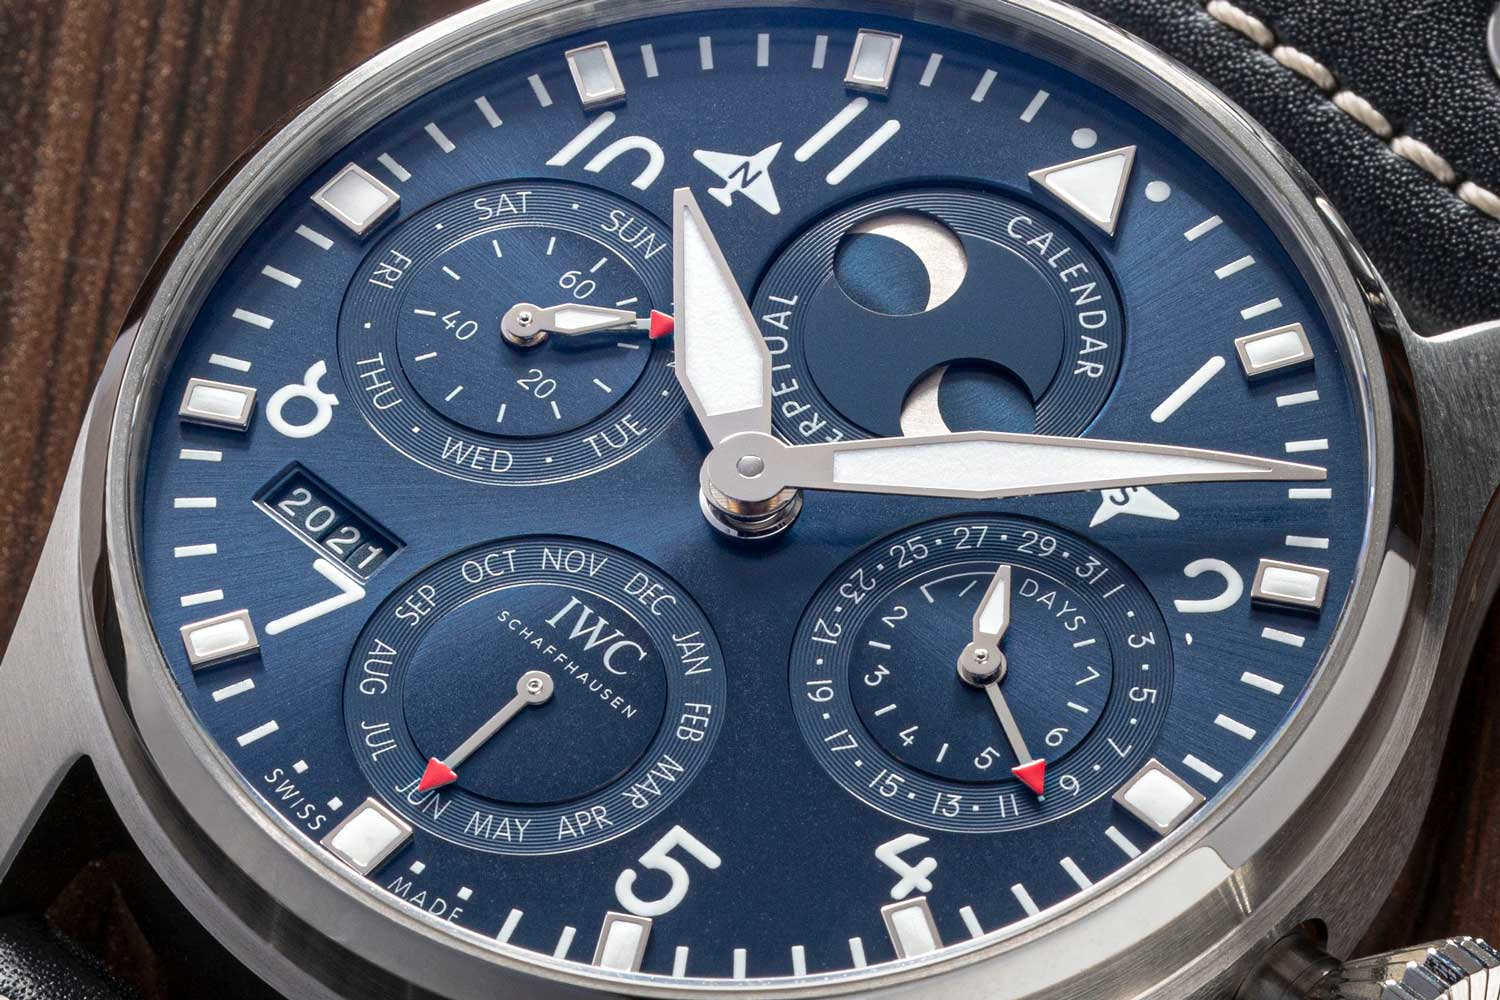 The new Big Pilot Watch Perpetual Calendar has a 46.2 mm stainless-steel case and a blue dial with rhodium-plated hands. (Image: Revolution)